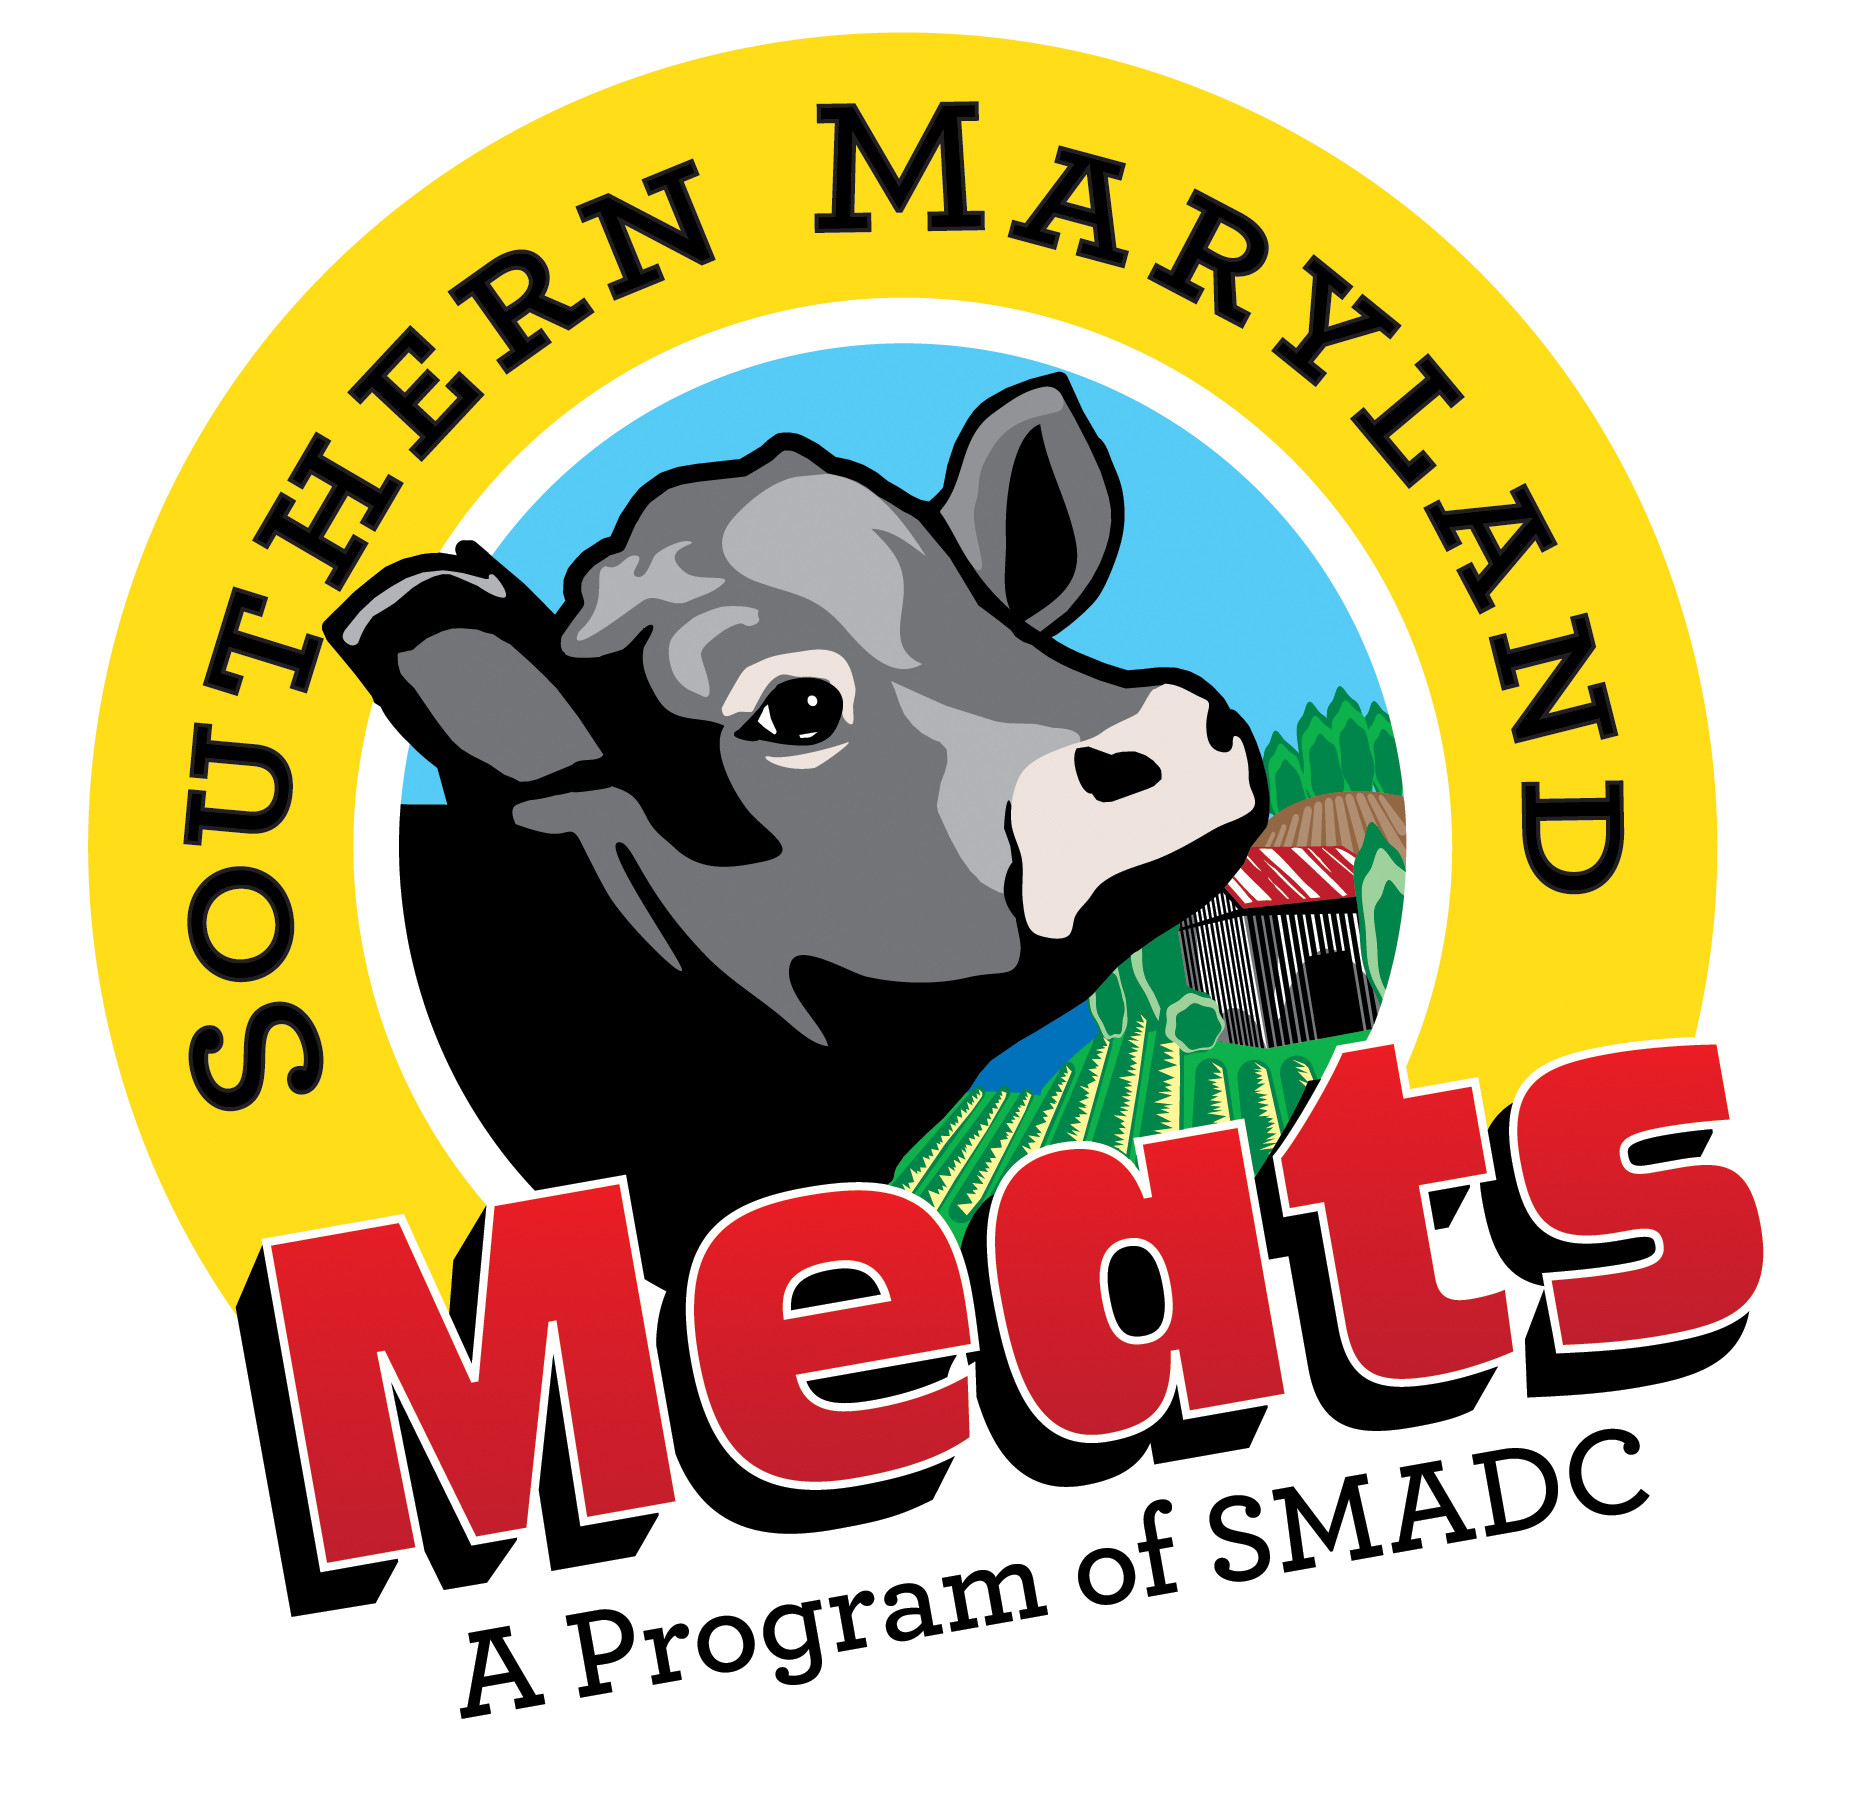 Find Local Meats in Maryland | Southern Maryland Meats